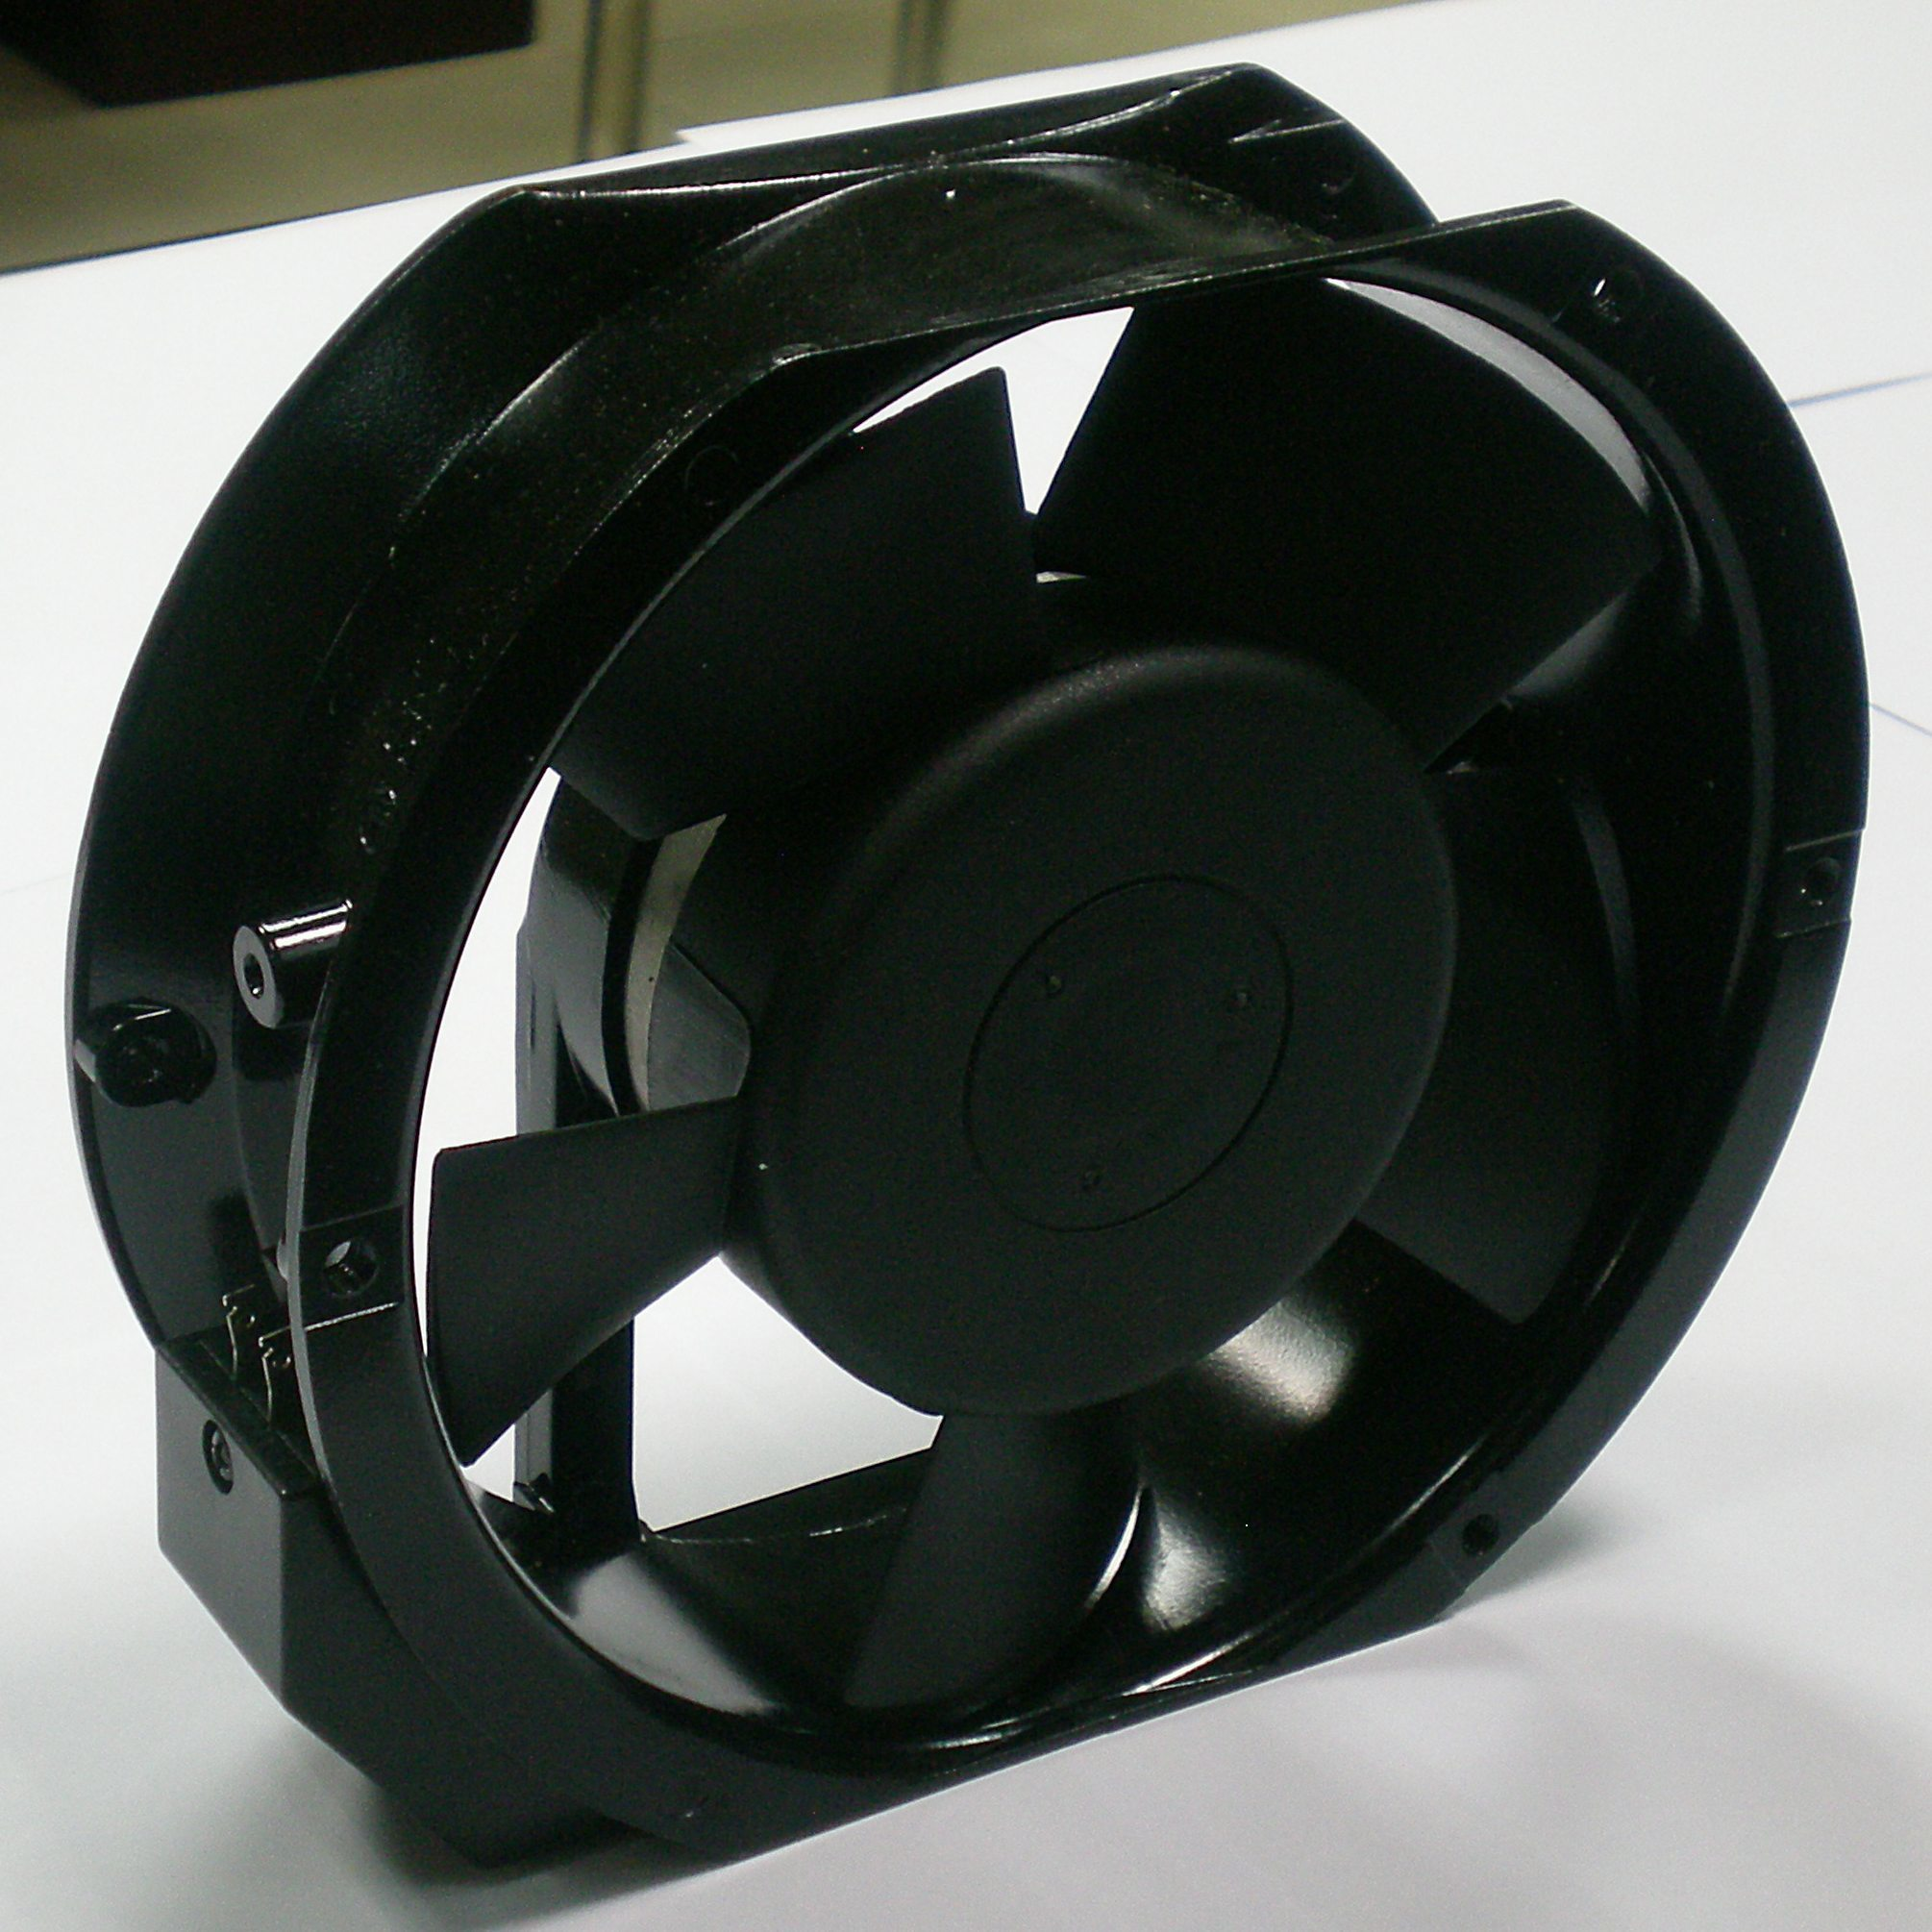 fan 172x150x50 220V 2 ball bearing 2500rpm EC17250A2HBL